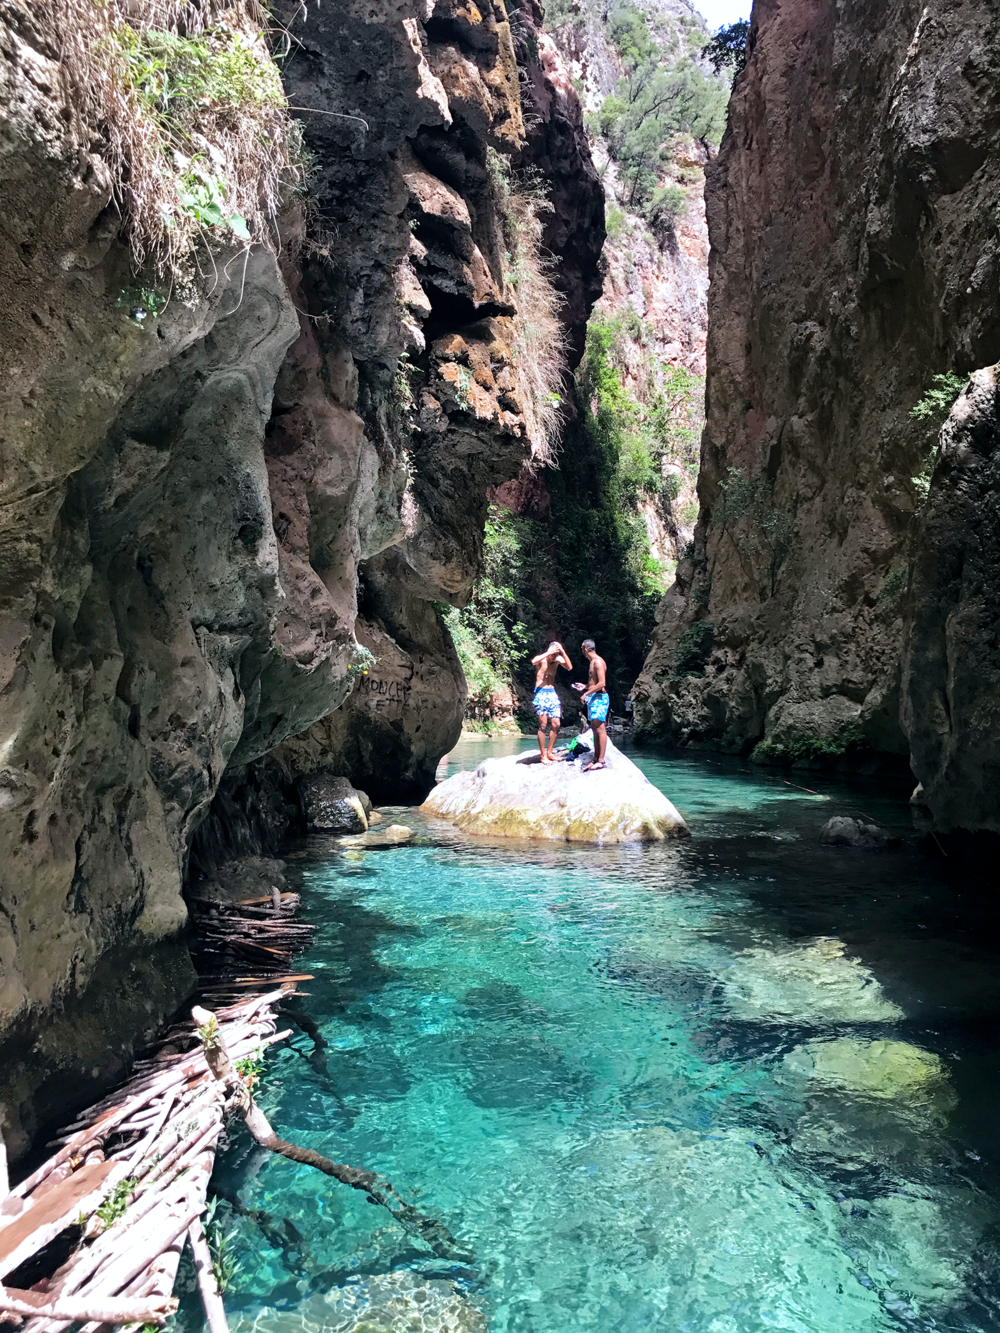 Akchour Morocco river canyoneering | Photos of Morocco